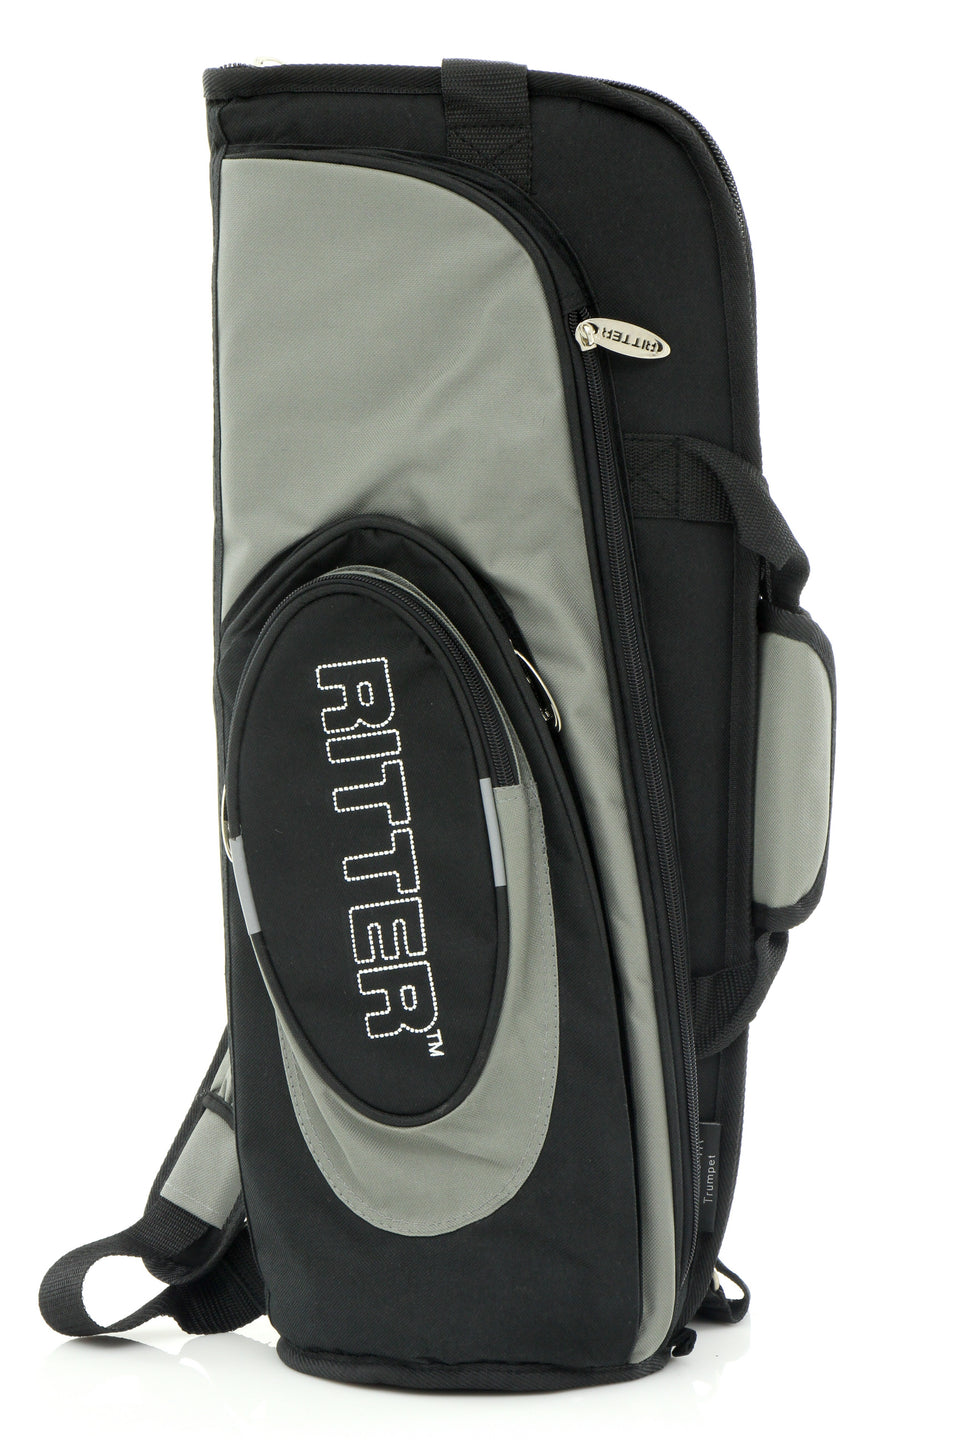 Ritter Classic Trumpet Gig Bag - Black/Steel Grey